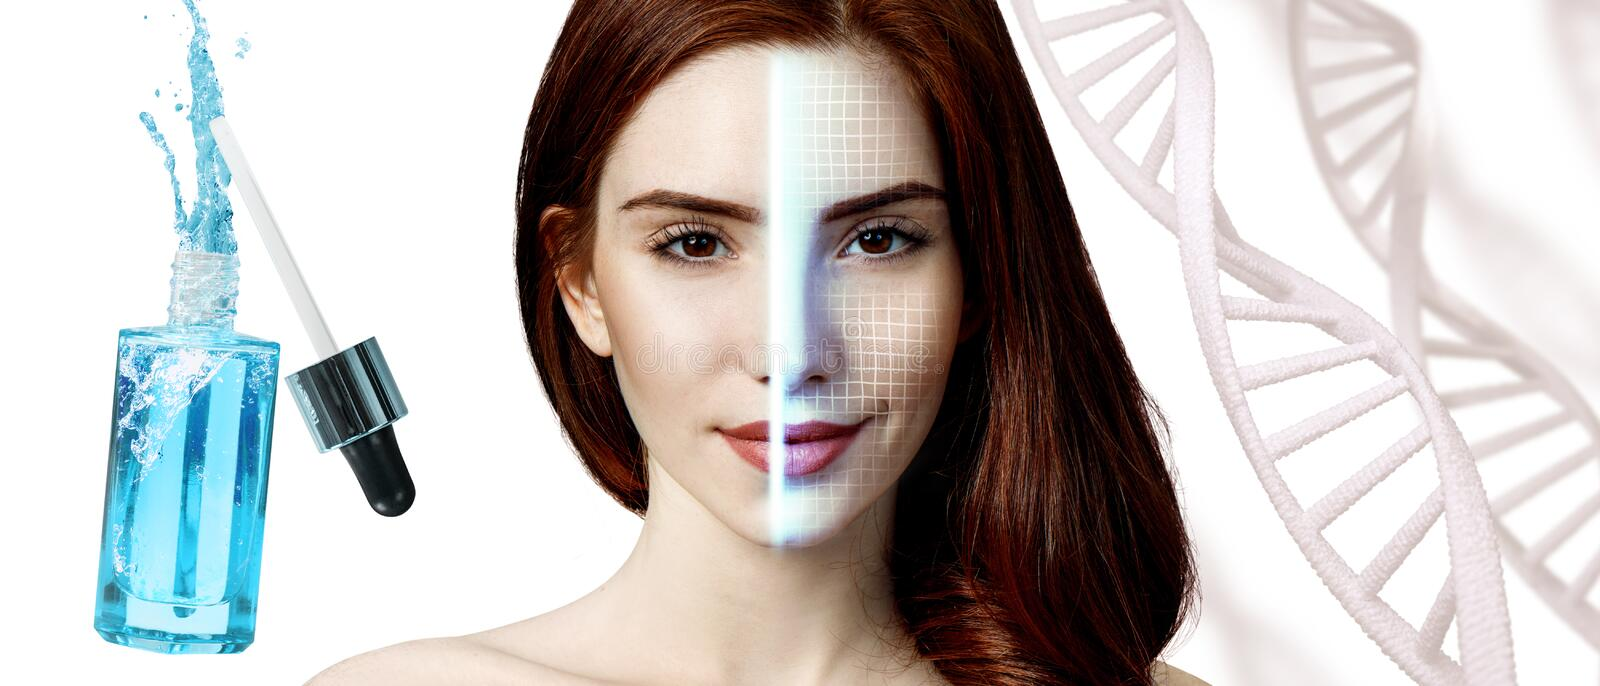 Scanning of woman face among DNA stems near blue bottle. Technological scanning of woman face among DNA stems near blue bottle royalty free stock image